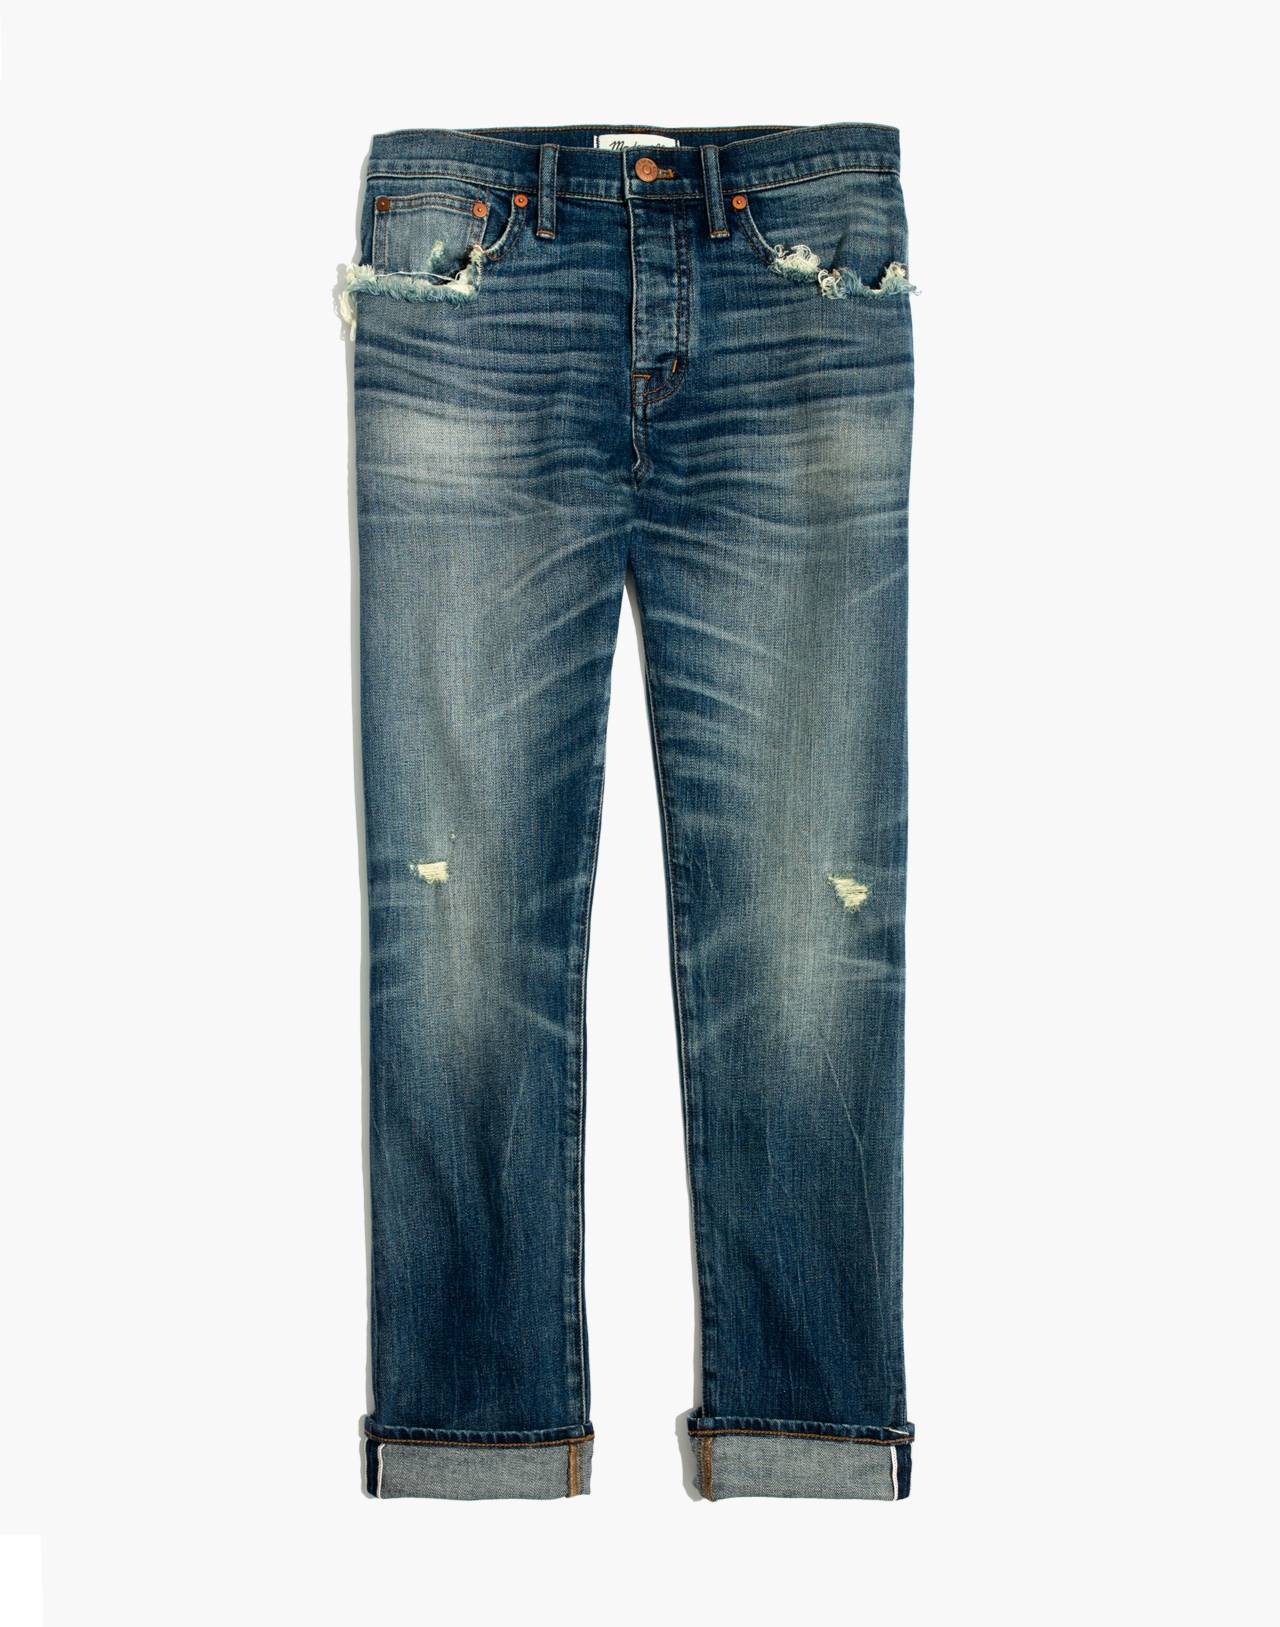 Straight-Leg Jeans in Cloverdale: Selvedge Edition in cloverdale wash image 4